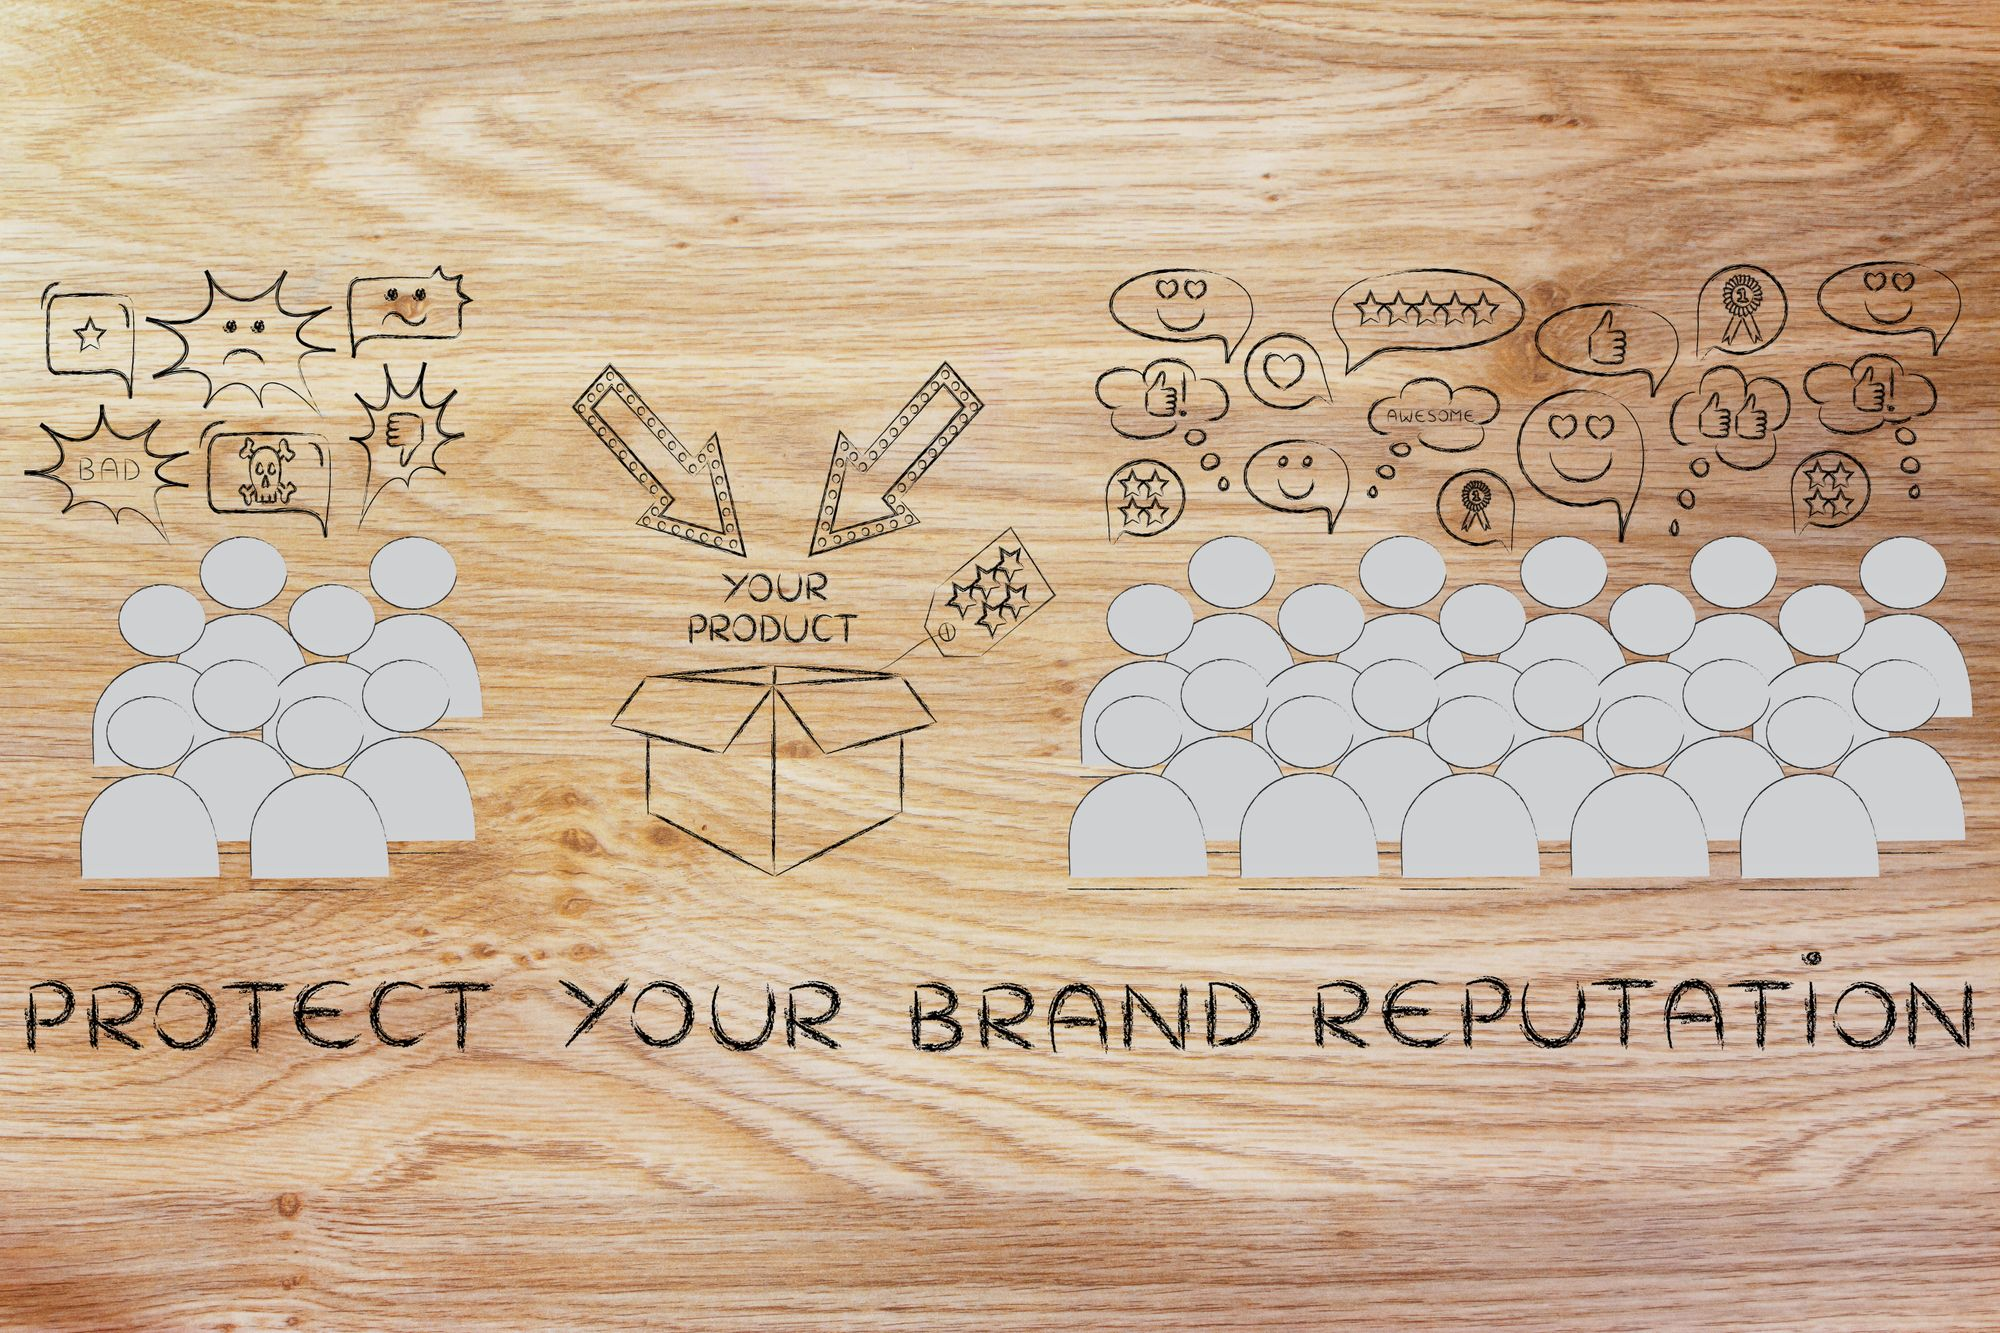 How to Protect Your Brand: Tips and Tricks From Bolster